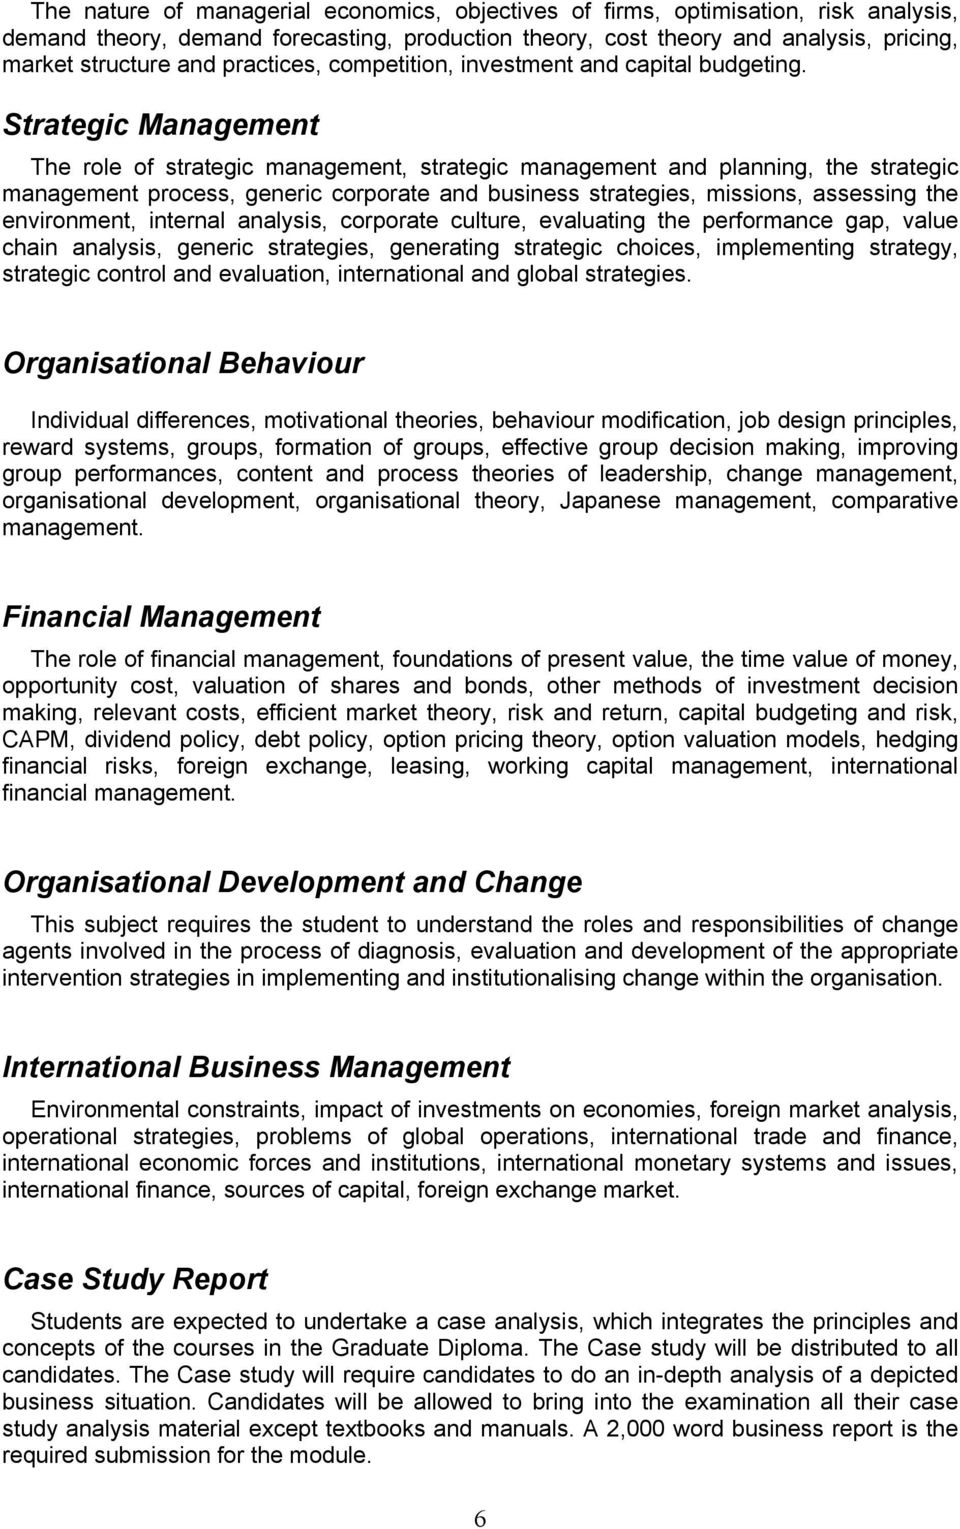 Strategic Management The role of strategic management, strategic management and planning, the strategic management process, generic corporate and business strategies, missions, assessing the